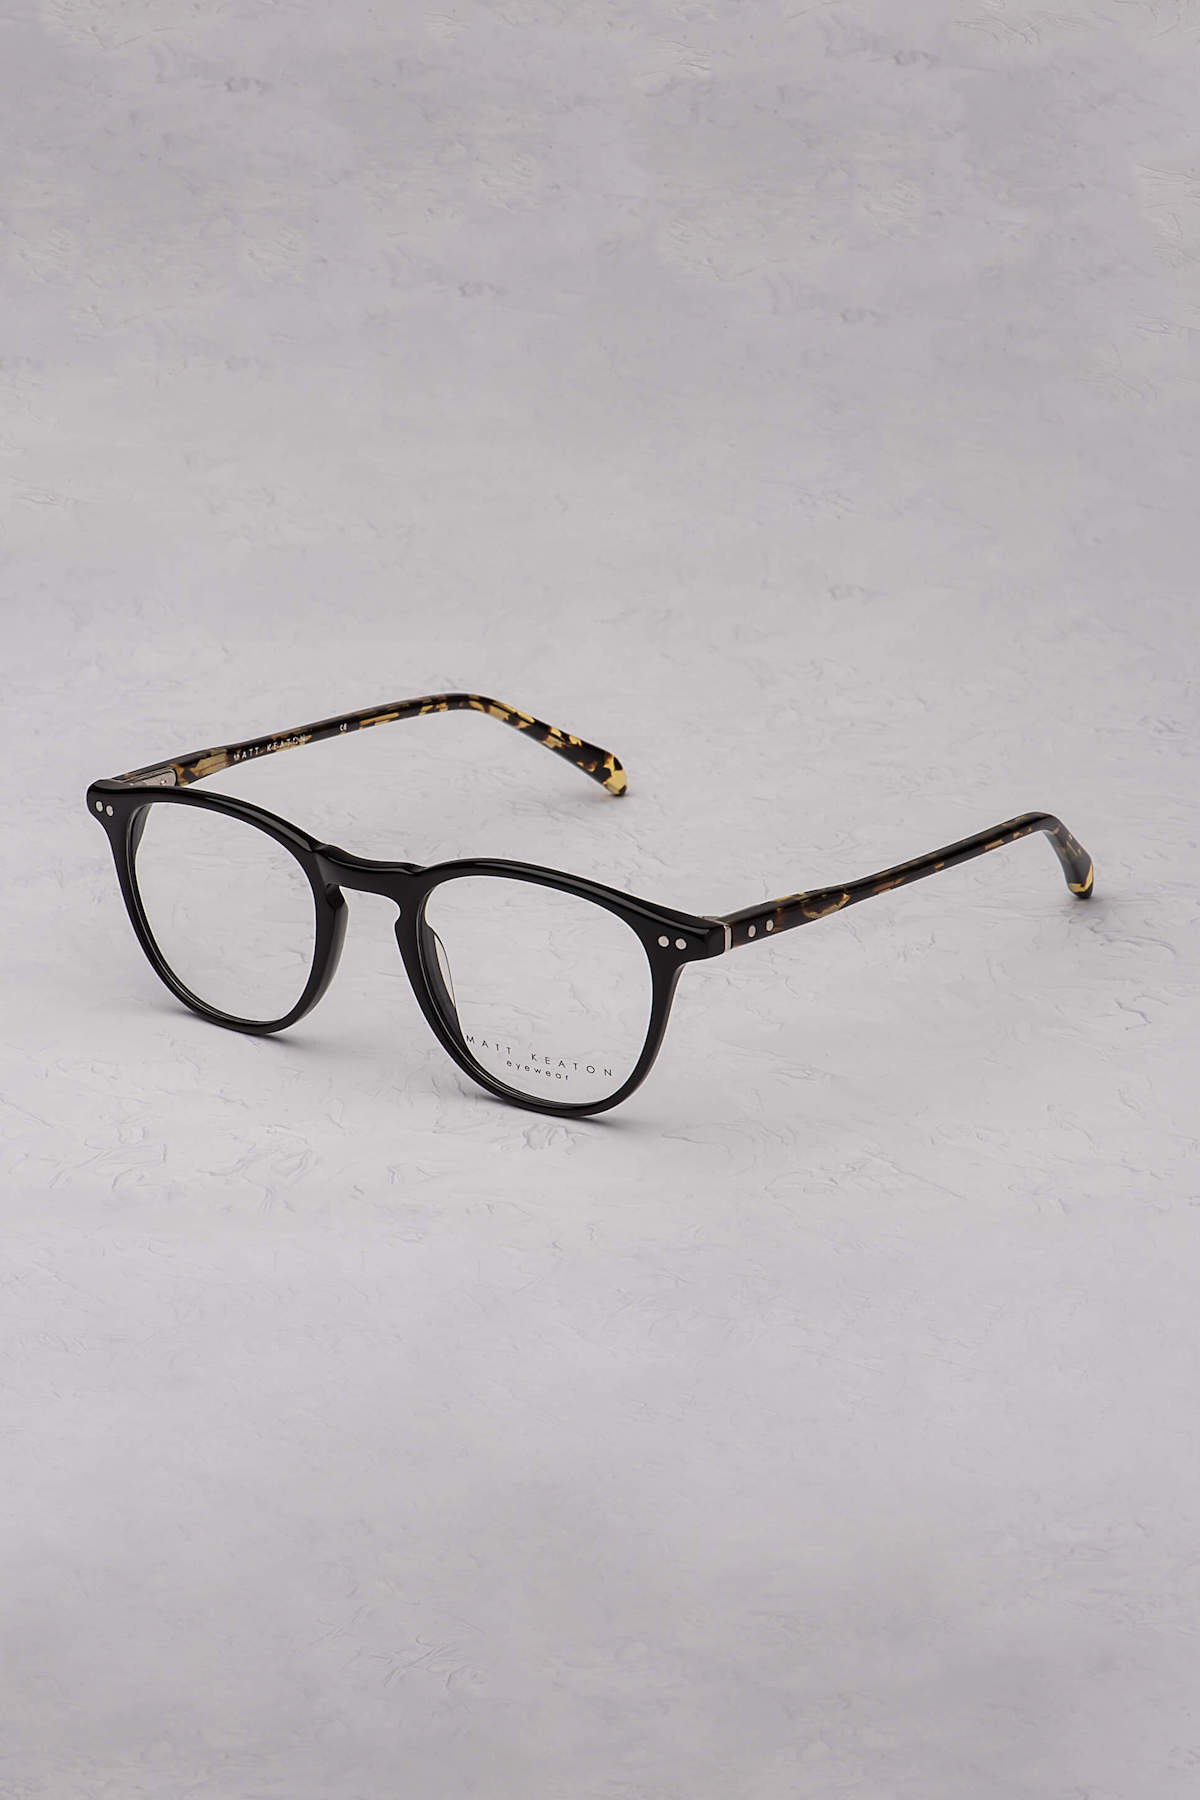 501864beb1 Lunette de vue Matt Keaton - MK4017 Carré - Optic Duroc